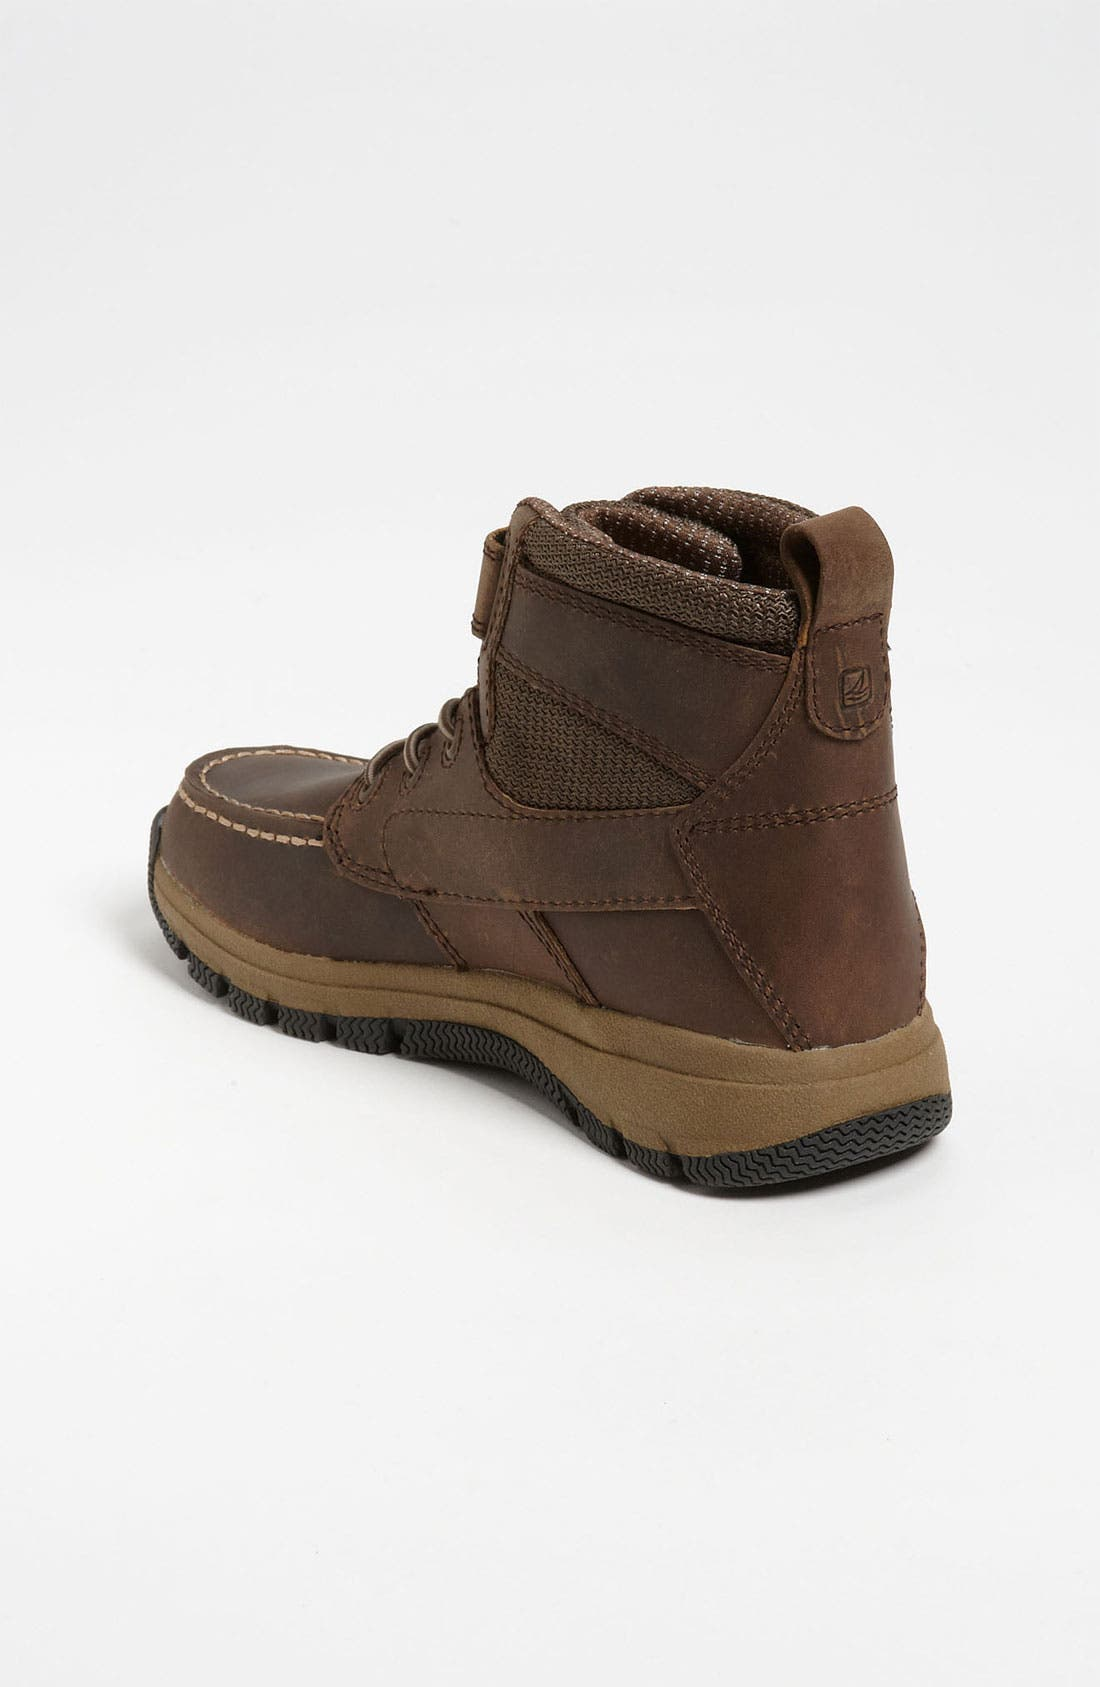 Alternate Image 2  - Sperry Top-Sider® Kids 'Cascade' Boot (Walker, Toddler, Little Kid & Big Kid)